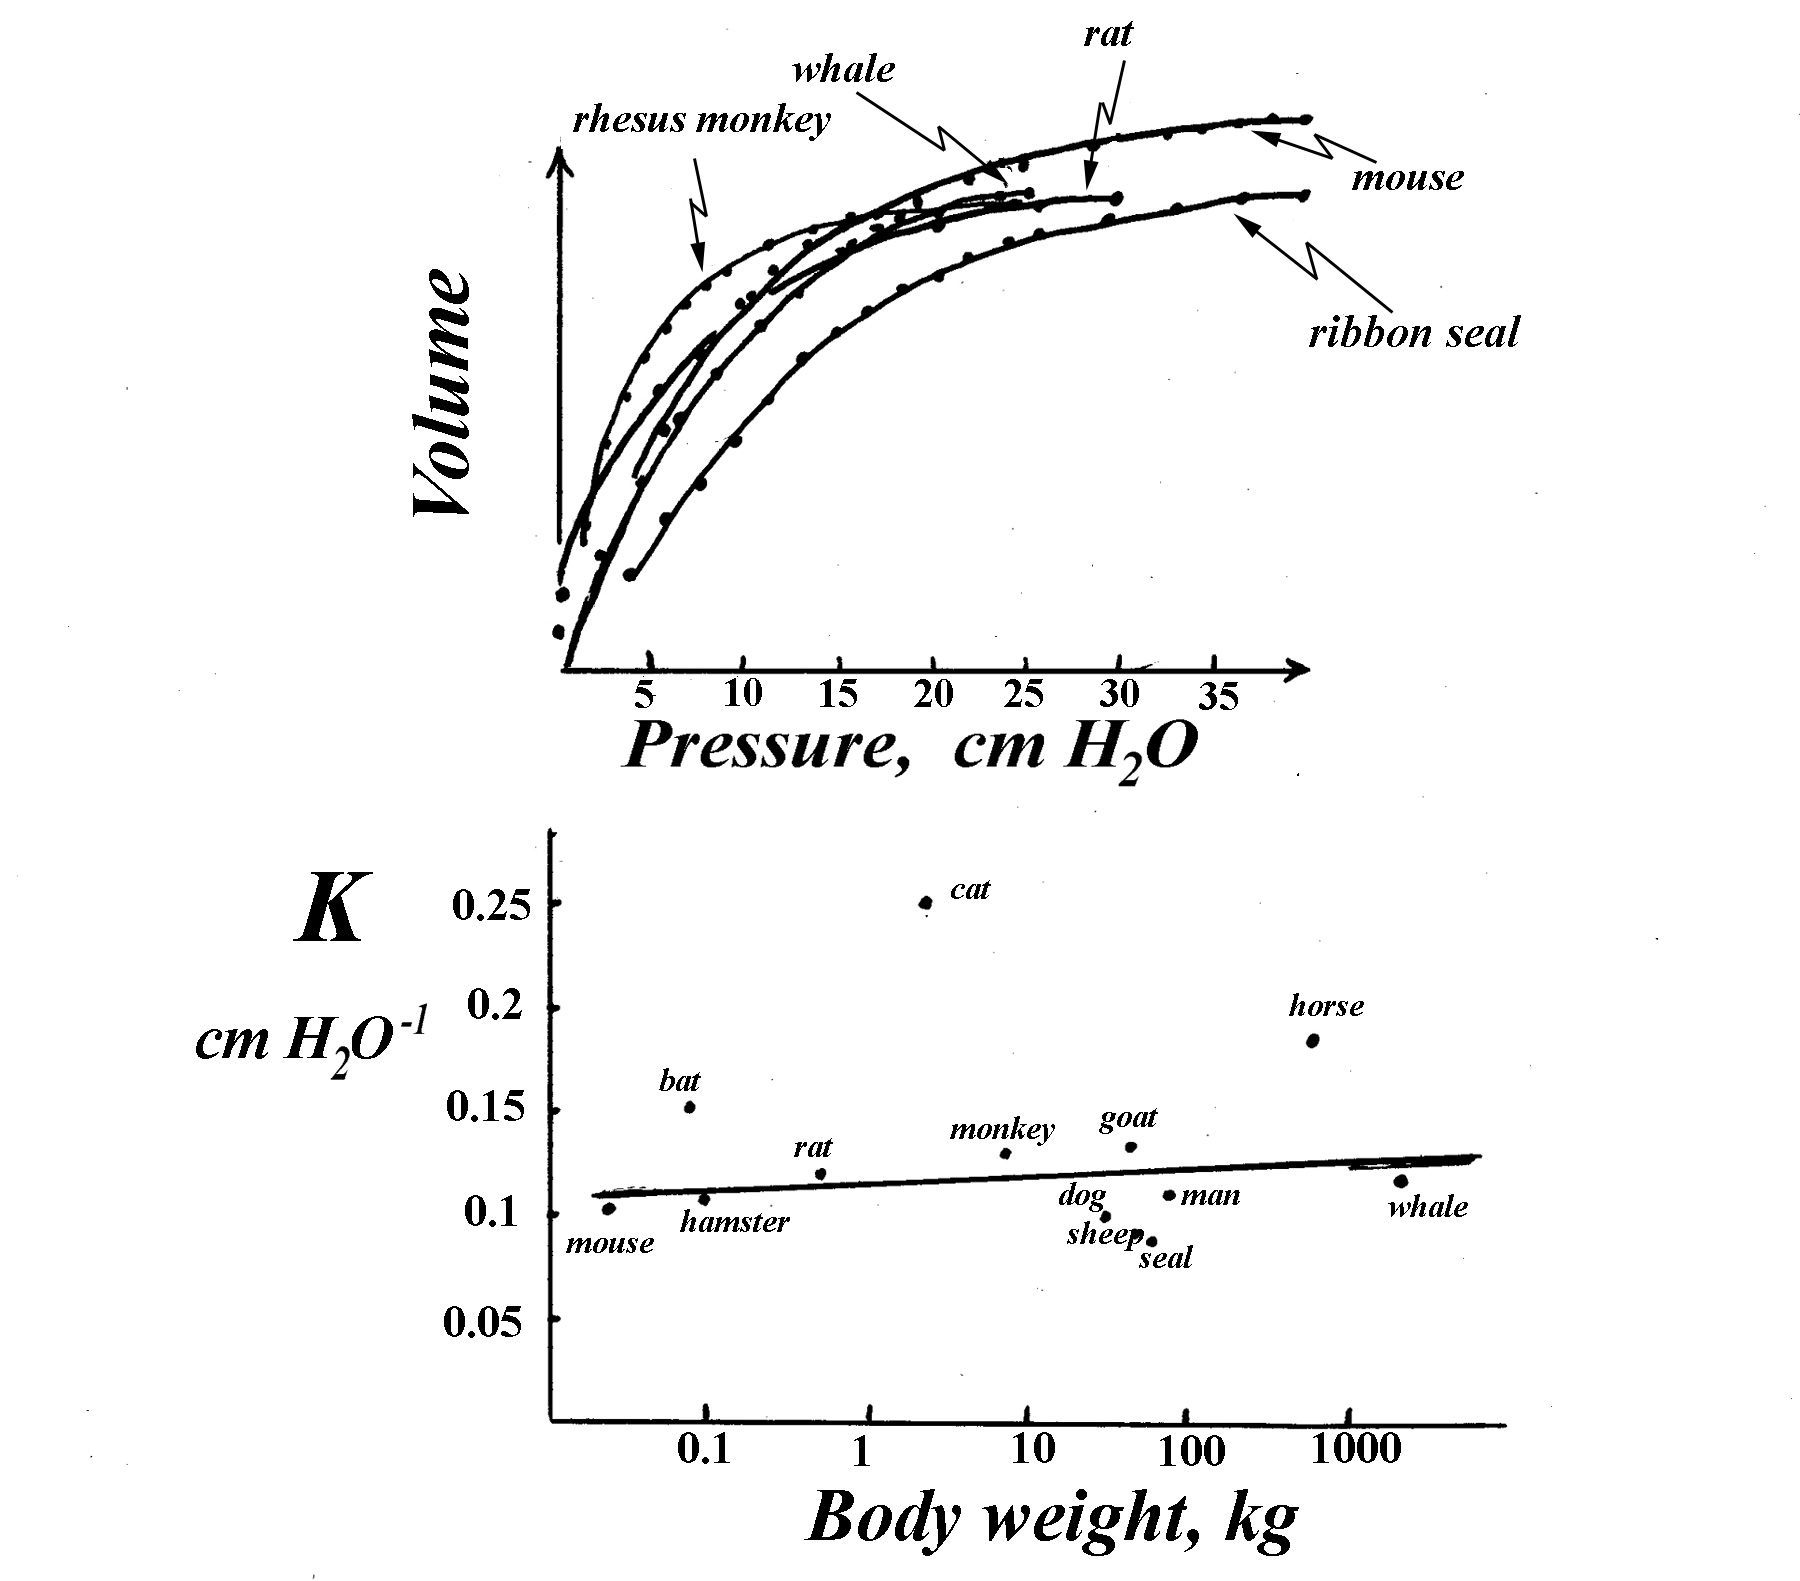 Functional Design Of The Respiratory System Inhalation And Exhalation Diagram Breathing Activity Fig15 Pressure Volume P V Curve Lungs During Deflation From Maximal Plateau In Several Mammals Shape Is Remarkably